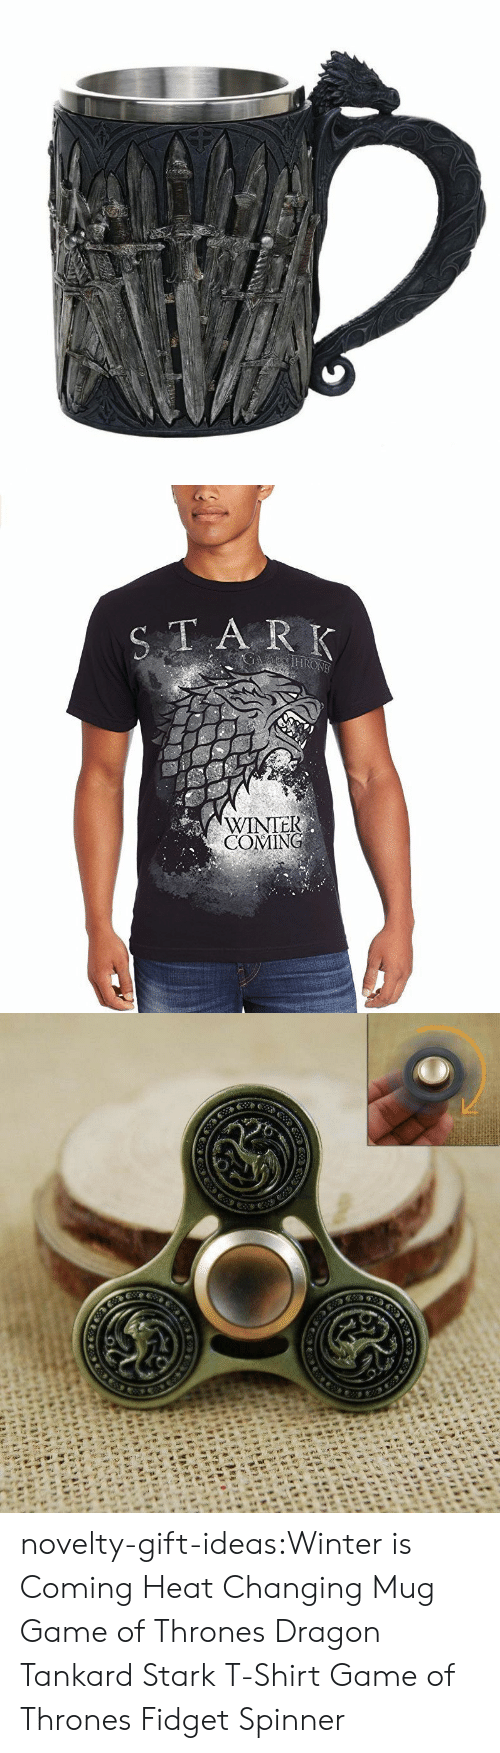 Winter Is: TA R K  WINTEK  COMING novelty-gift-ideas:Winter is Coming Heat Changing Mug  Game of Thrones Dragon Tankard    Stark T-Shirt Game of Thrones Fidget Spinner